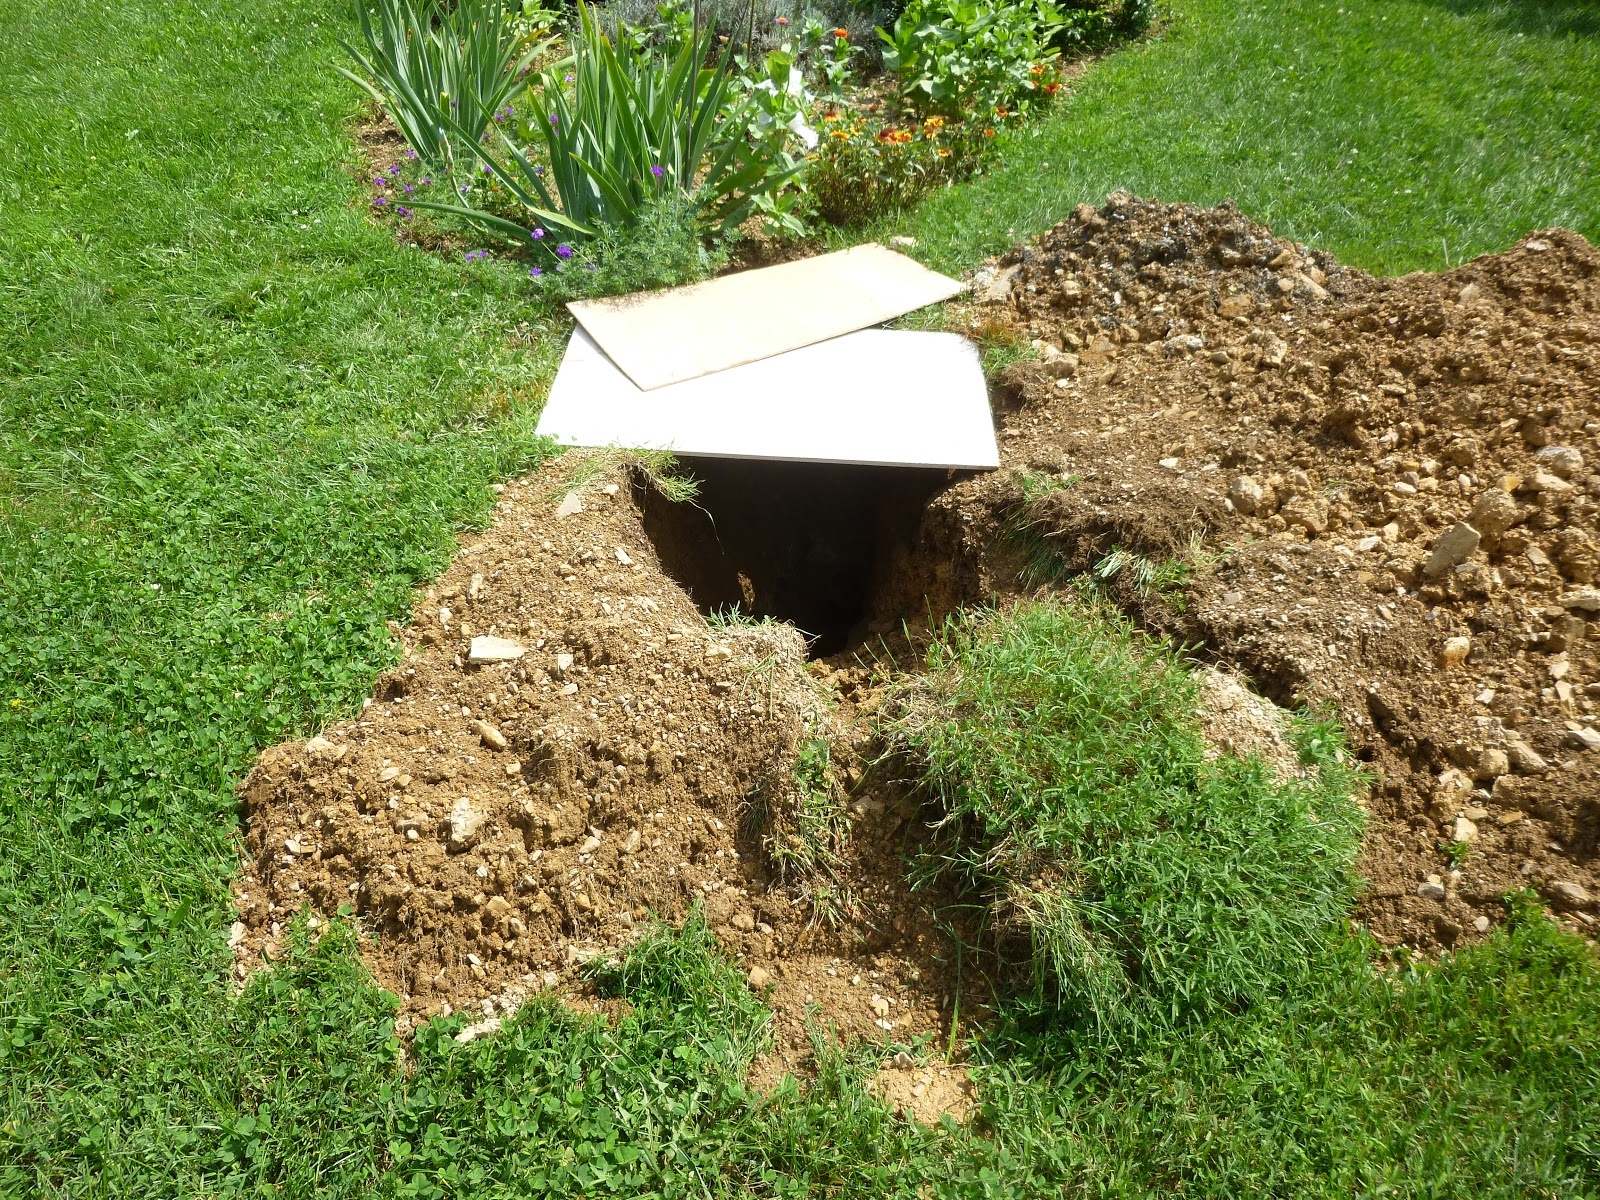 Reflections Septic Tank Problems